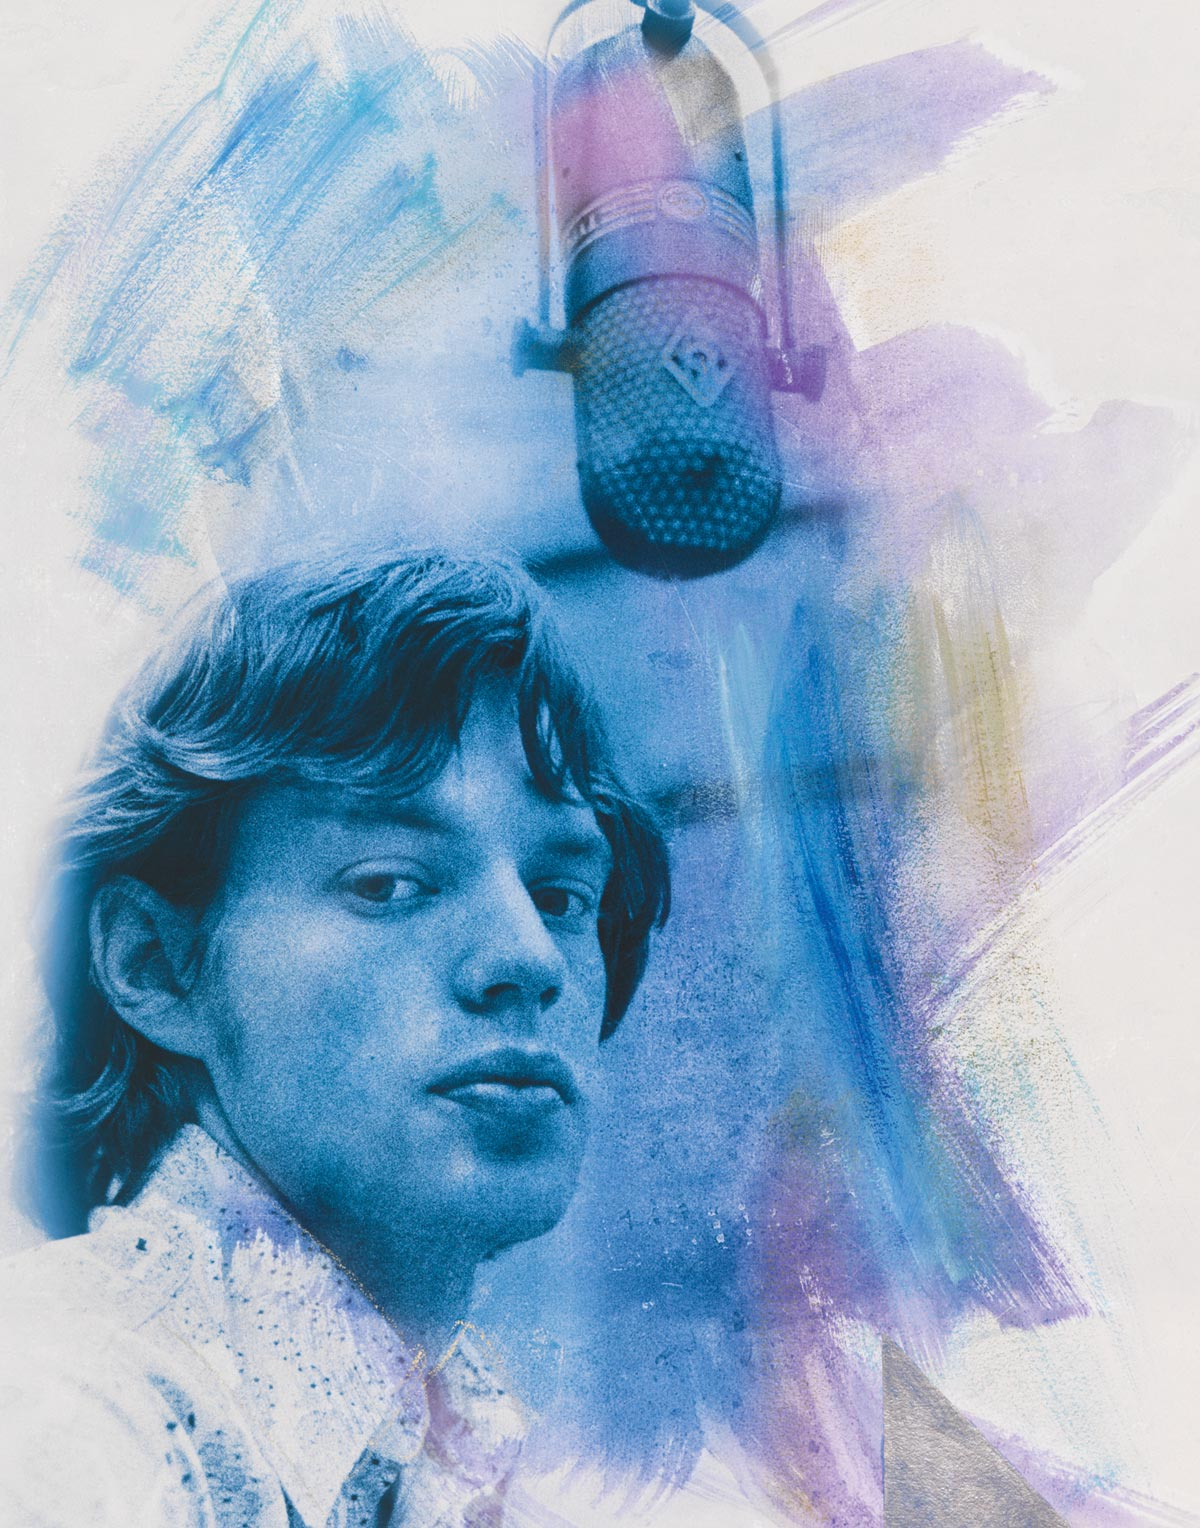 Mick Splash Blue Diamond featuring Mick Jagger